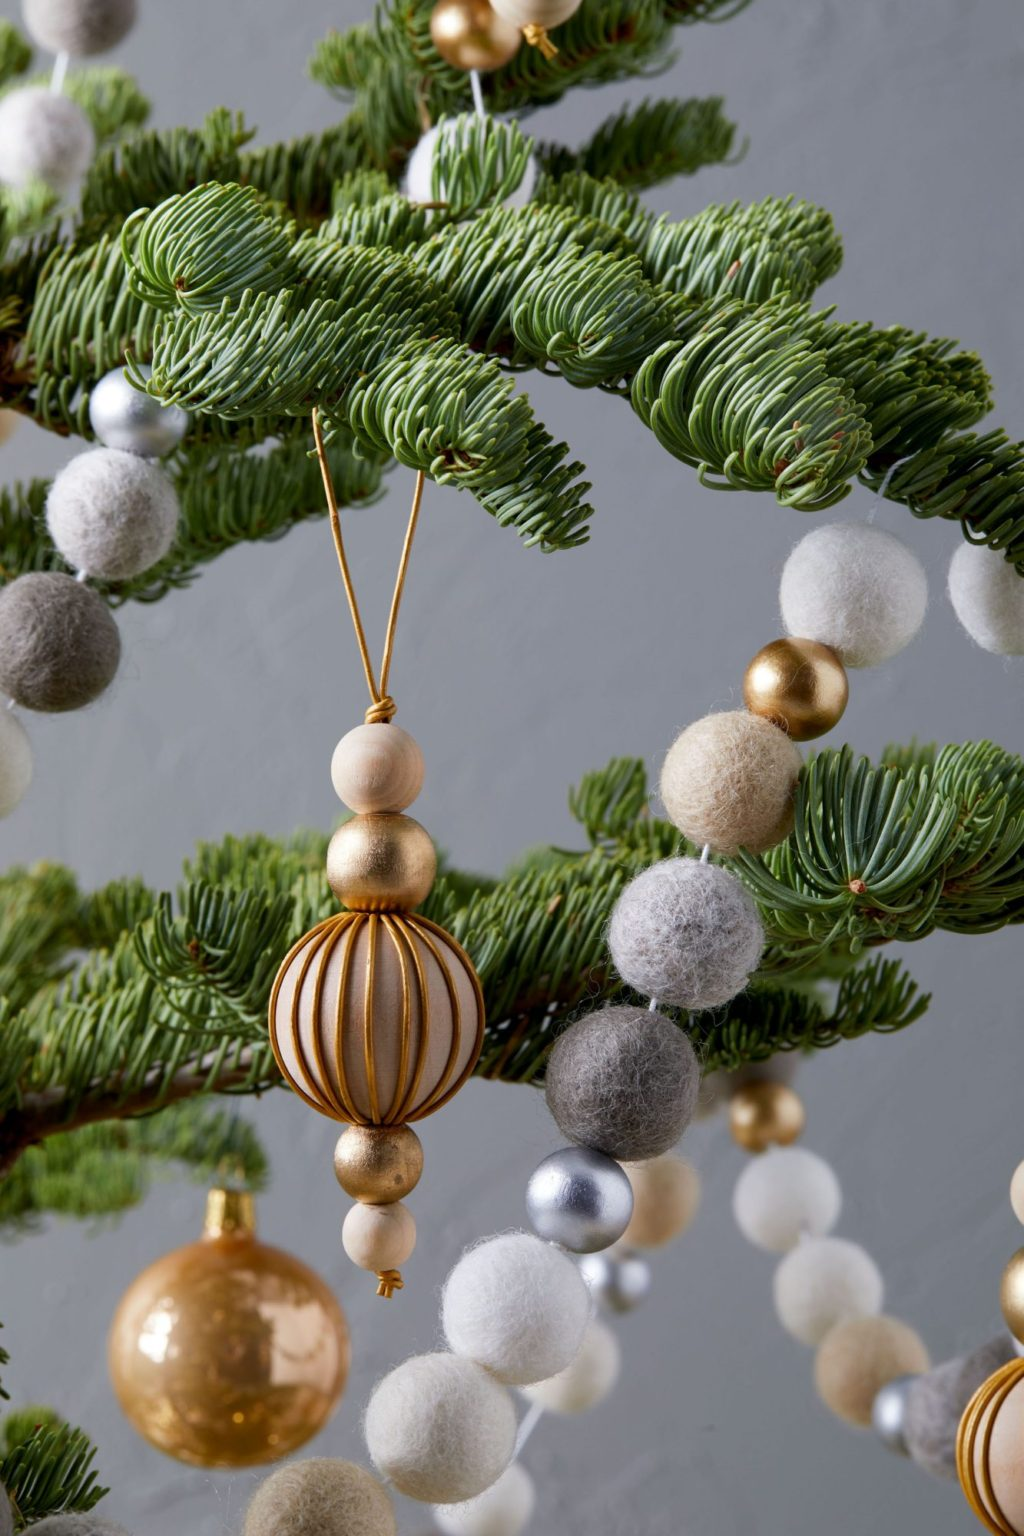 DIY-Christmas-Ornaments-1024x1536 70+ Impressive Christmas Decorations to Do Yourself in 2021